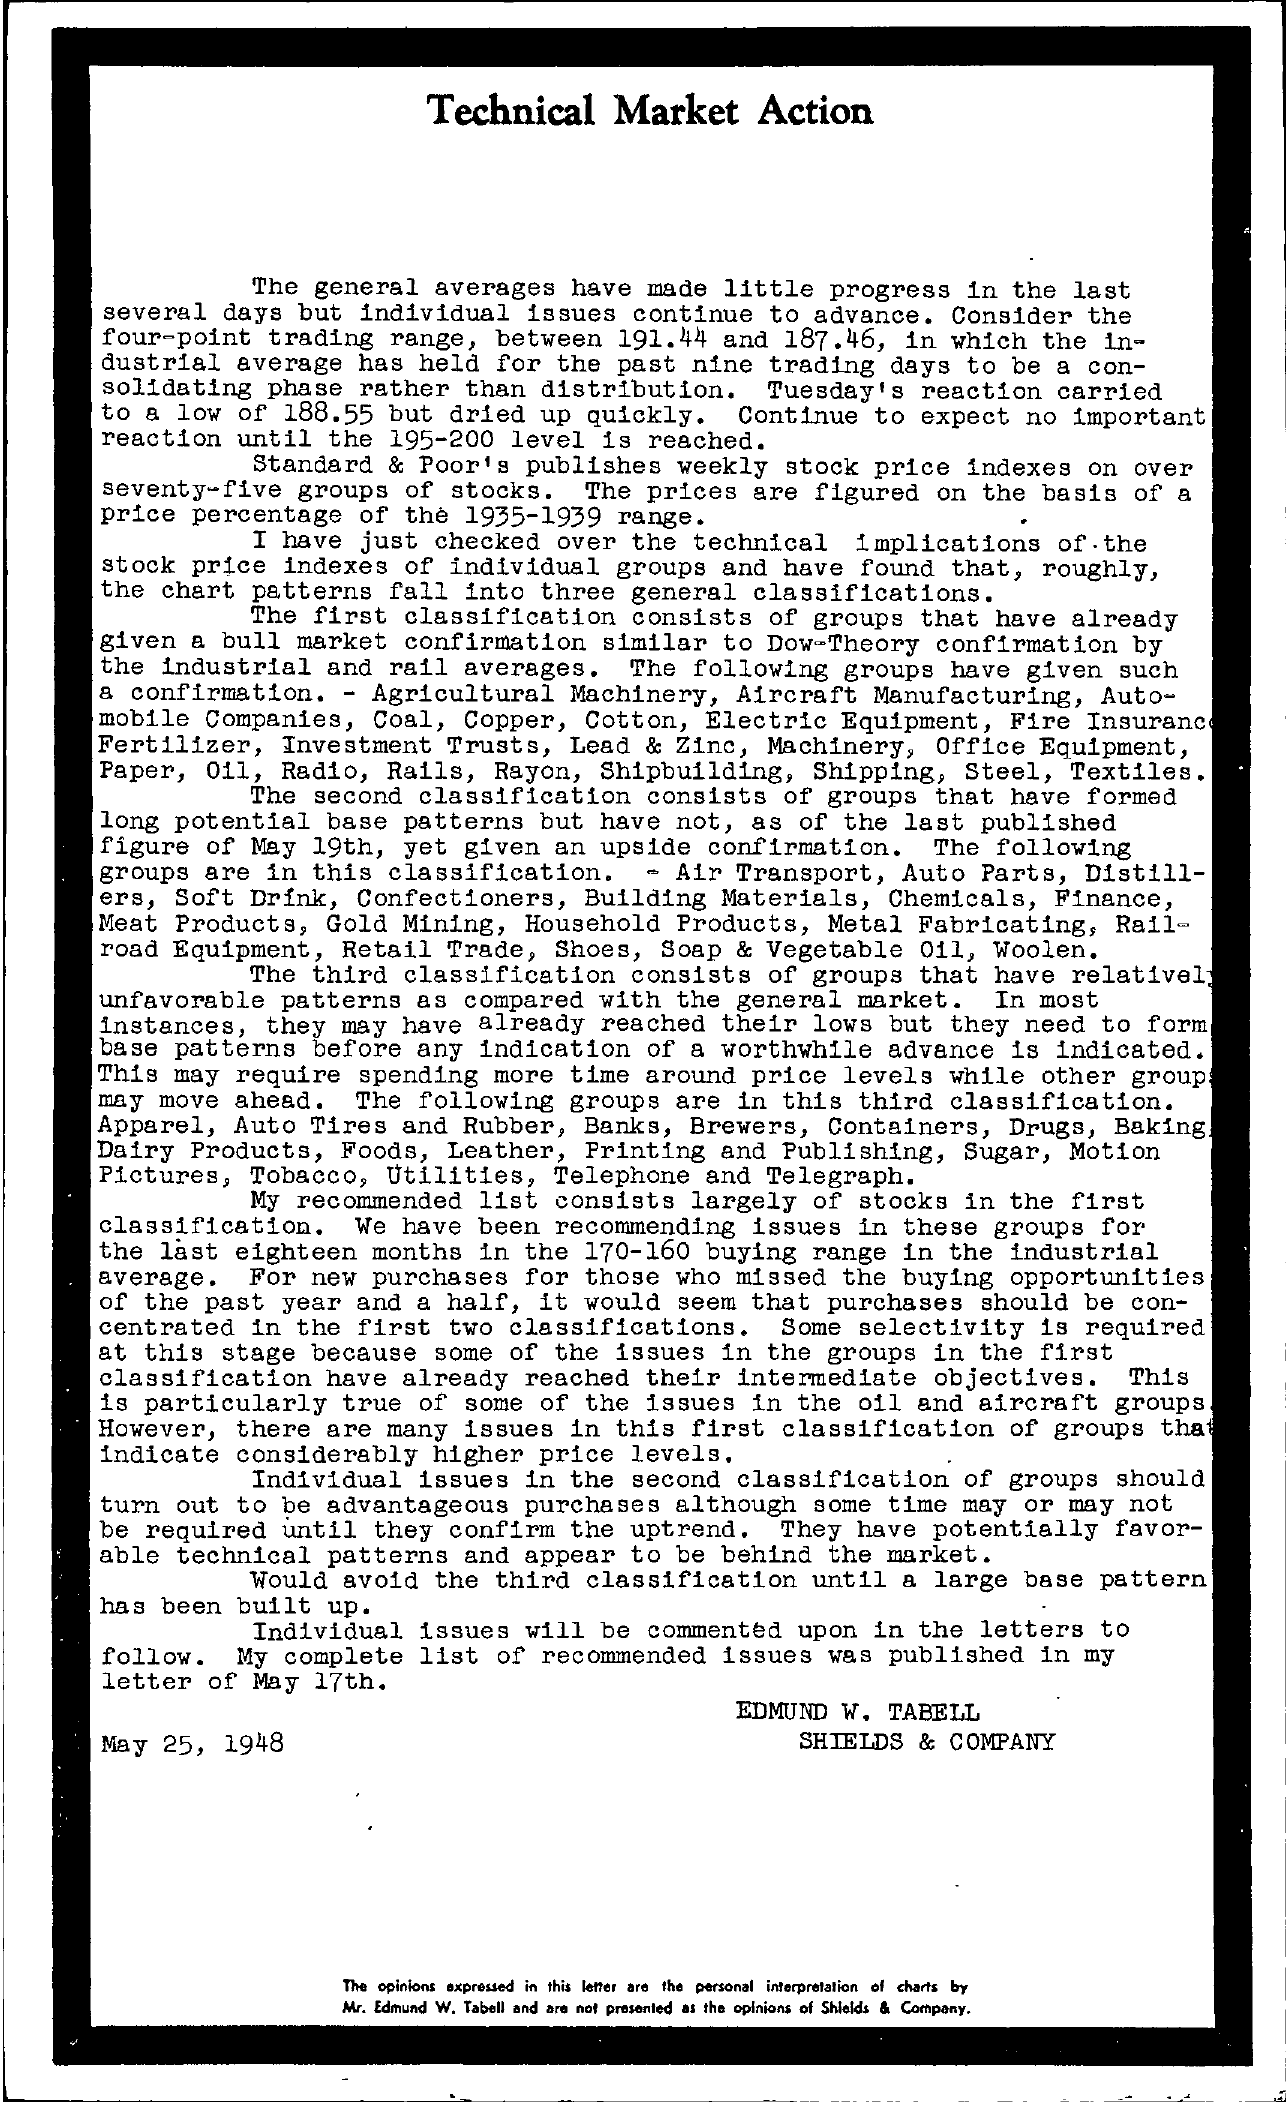 Tabell's Market Letter - May 25, 1948